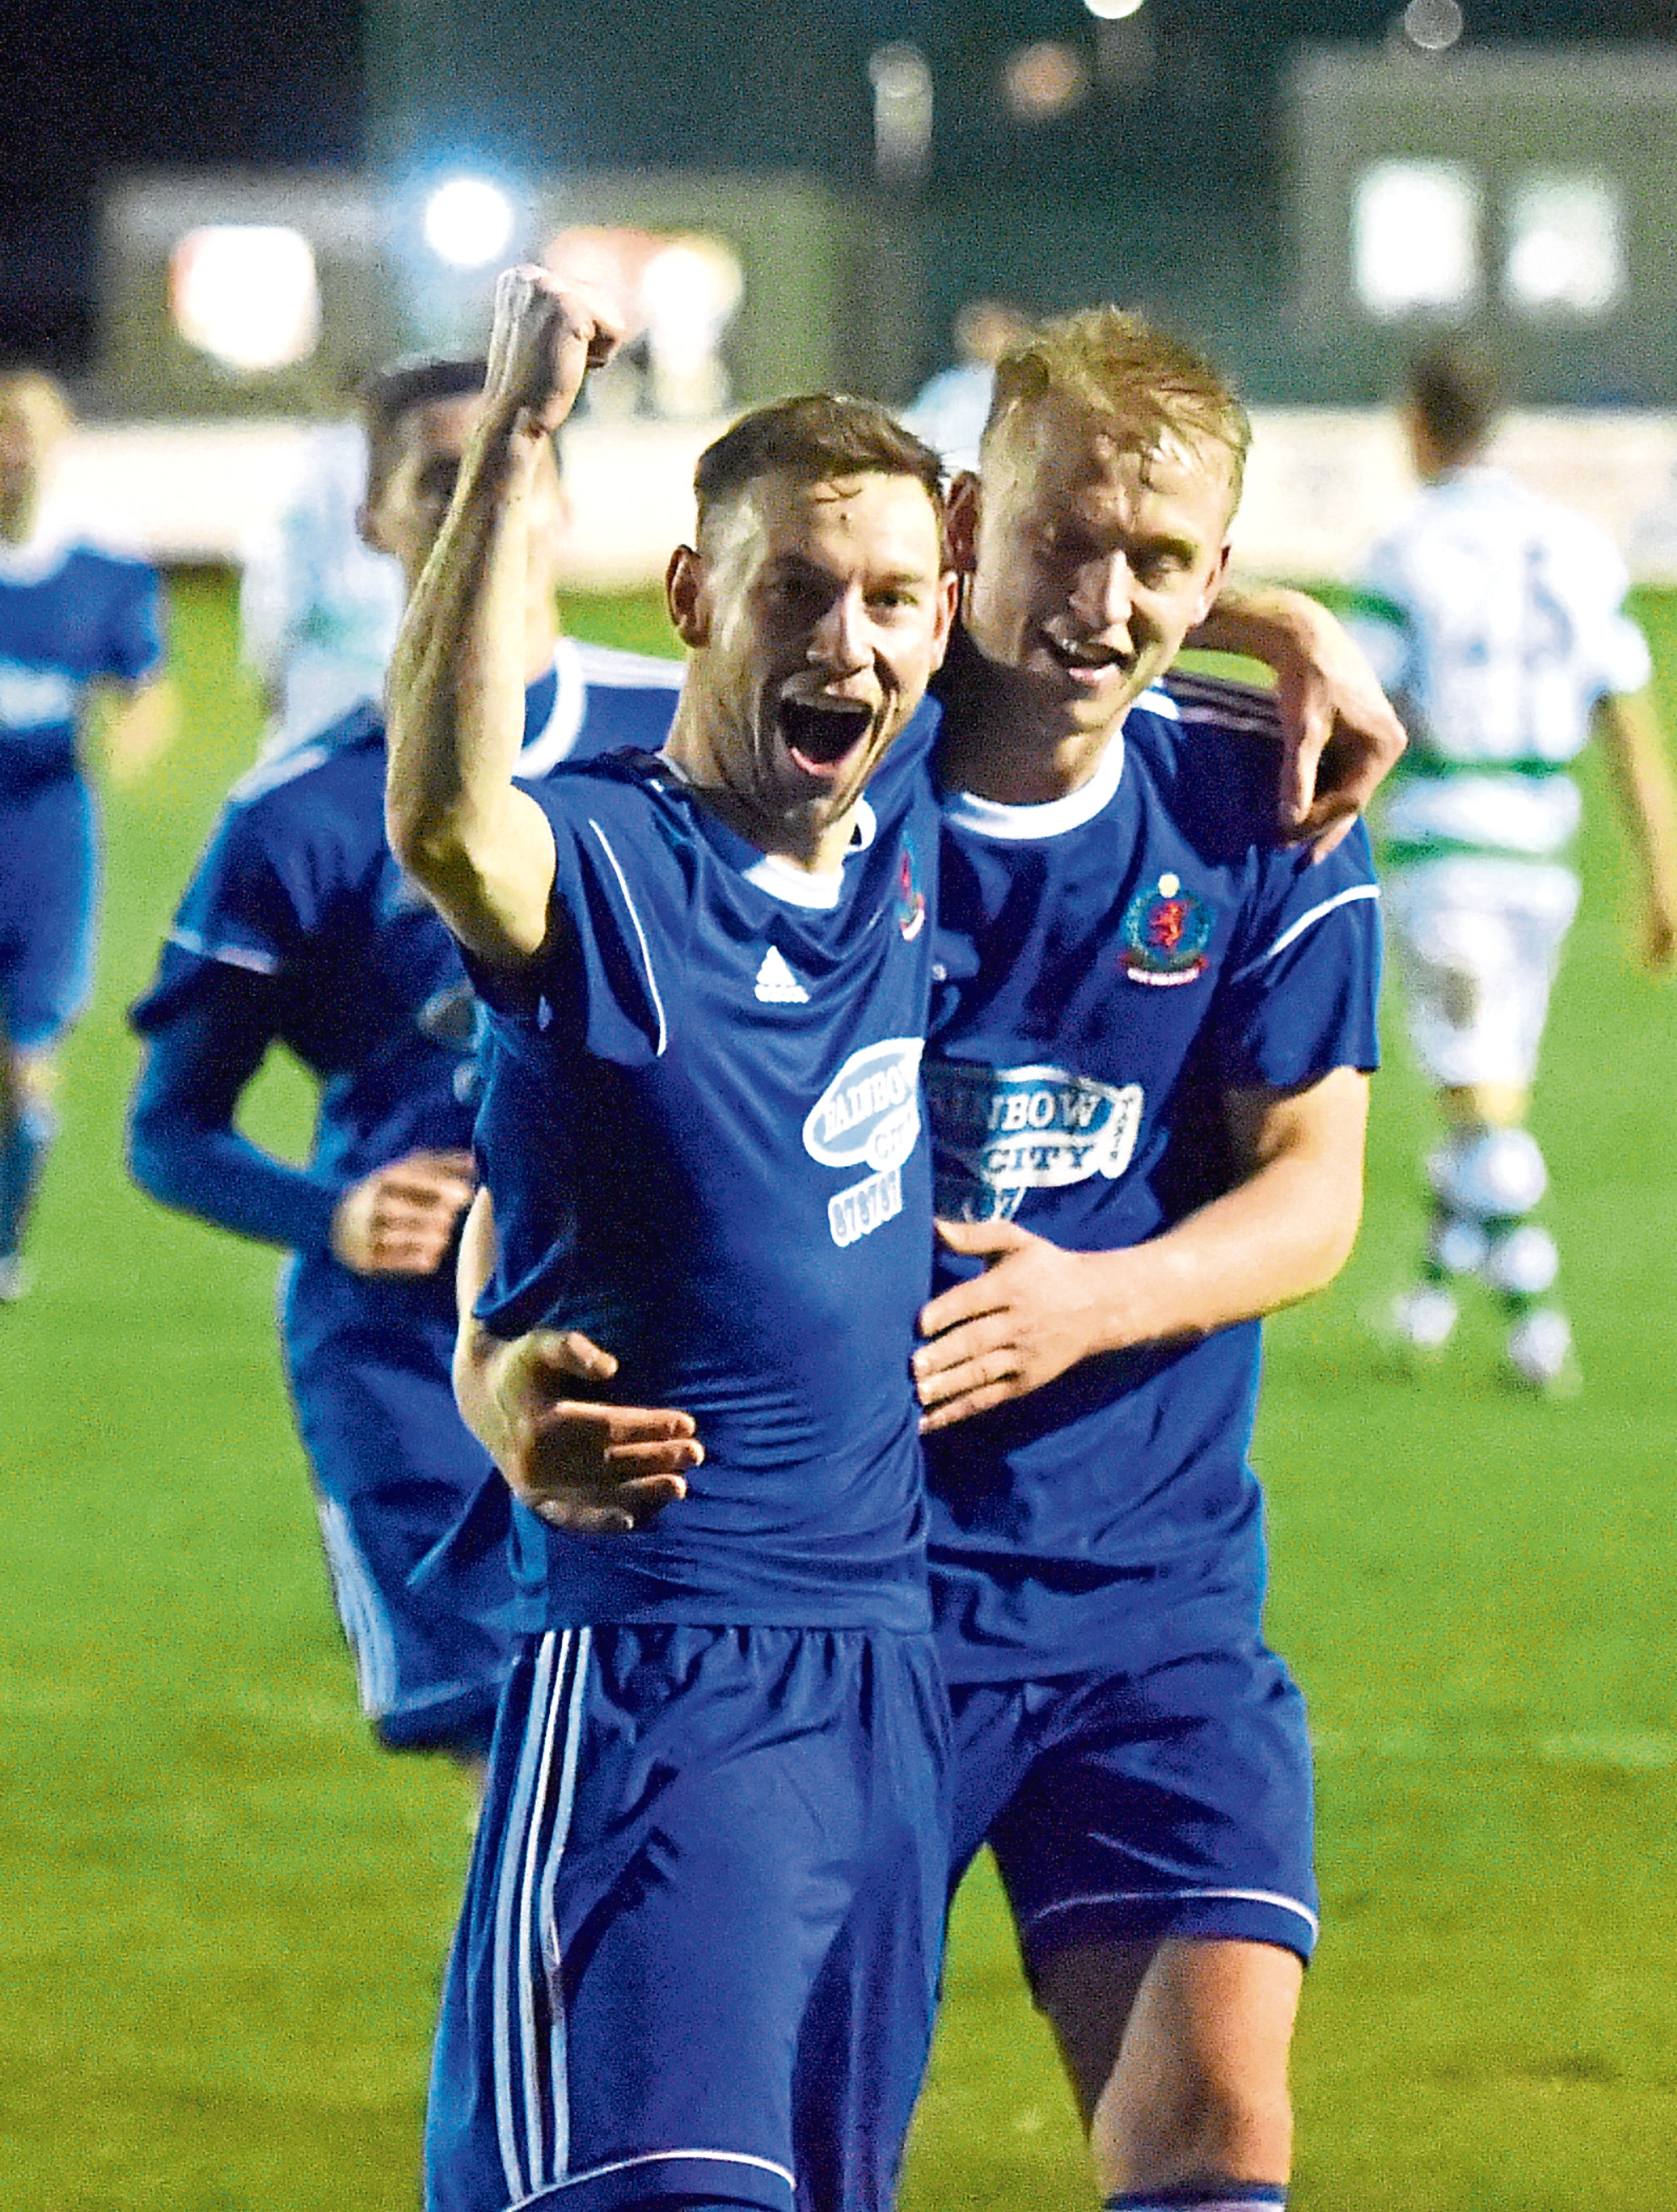 Mitch Megginson with Cove team mate Harry Milne after scoring a hat-trick against Buckie Thistle. Picture by JASON HEDGES